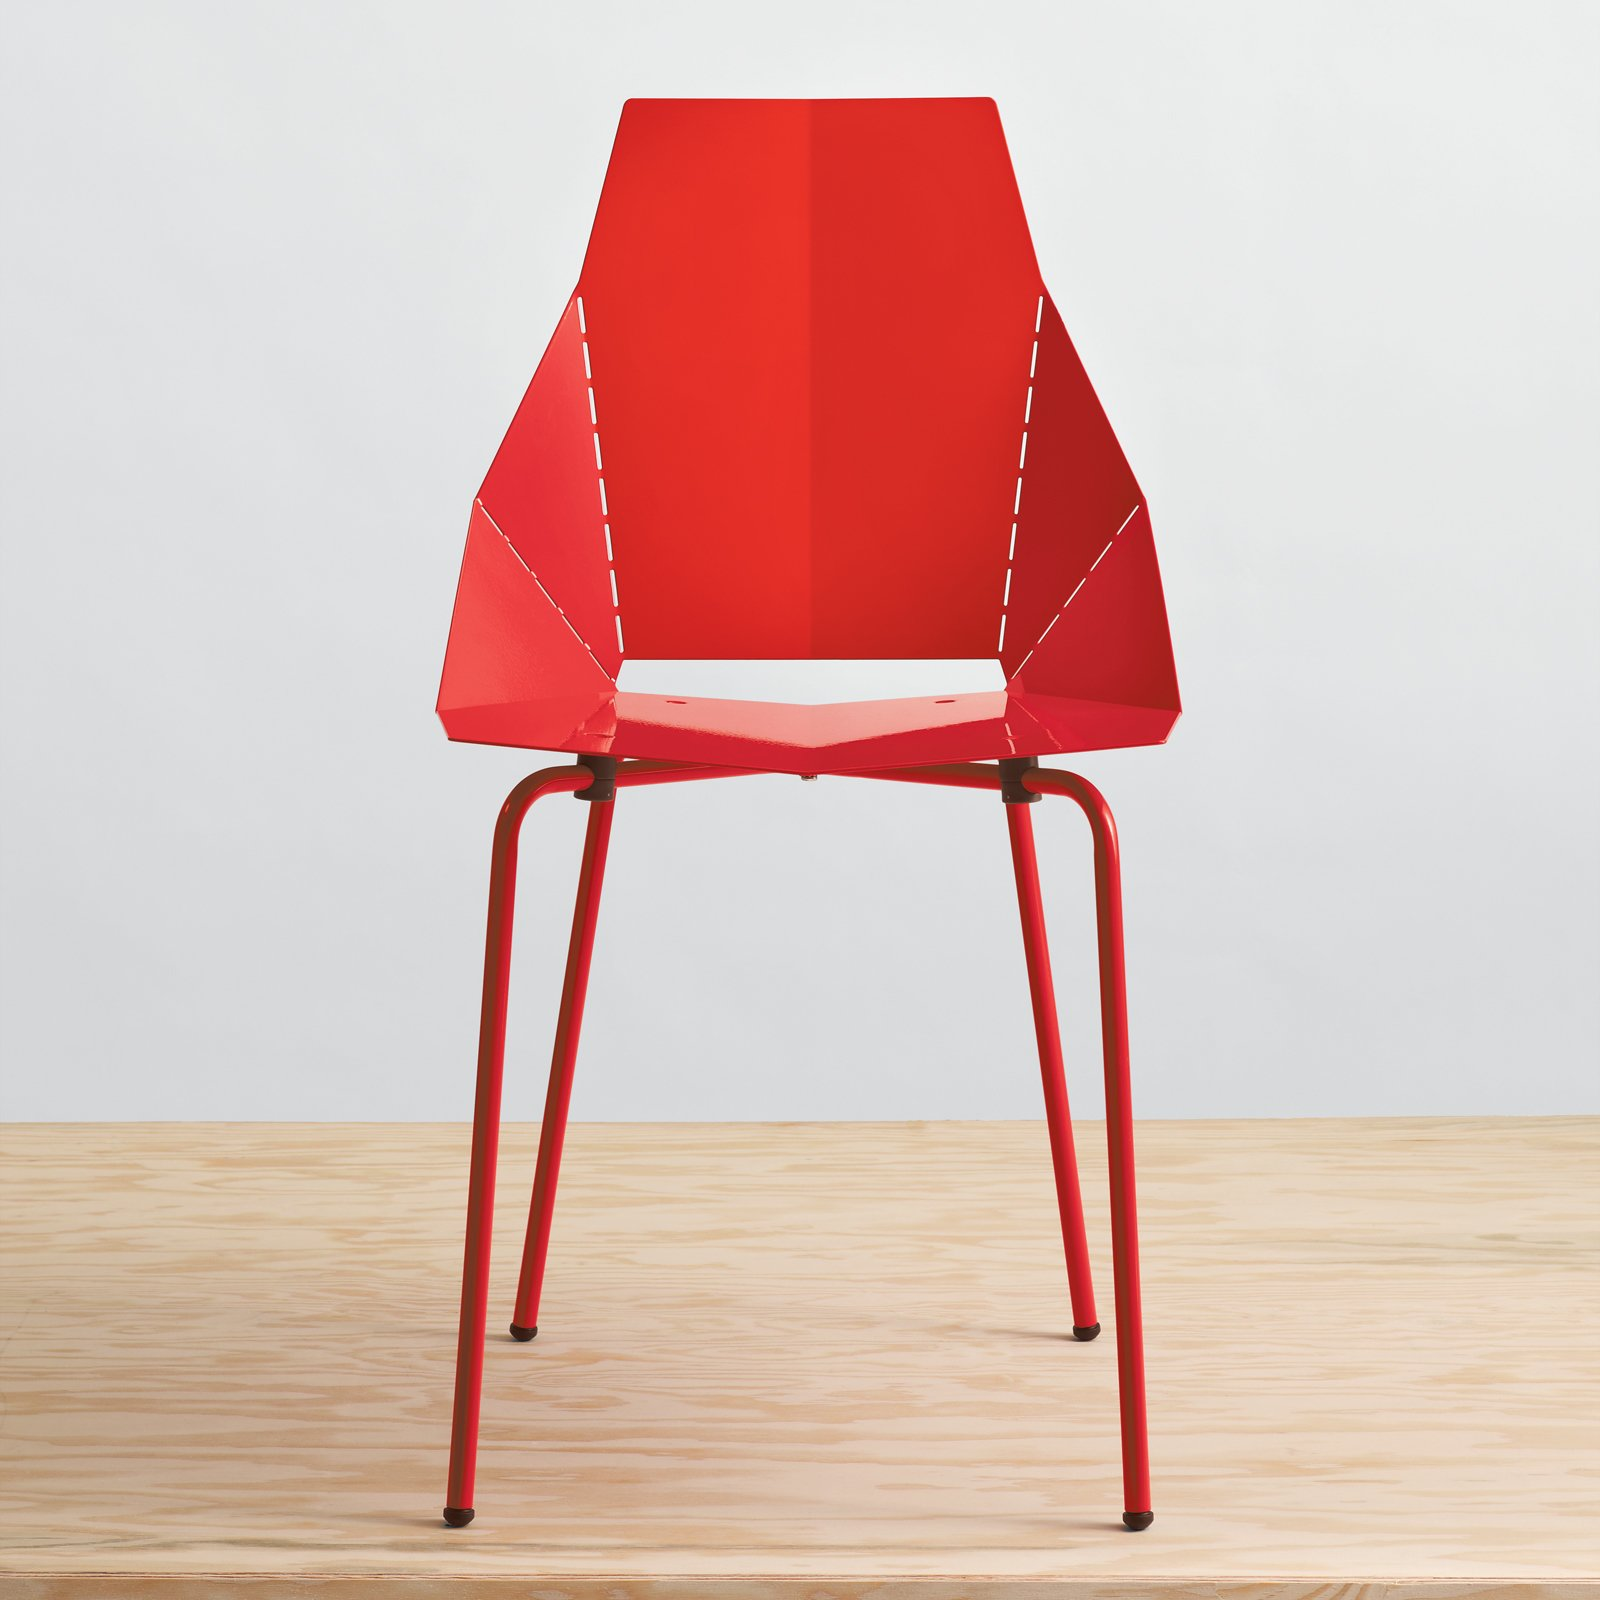 90mm  Blu Dot Spotted from Take a Seat: 8 Dashing Modern Chairs